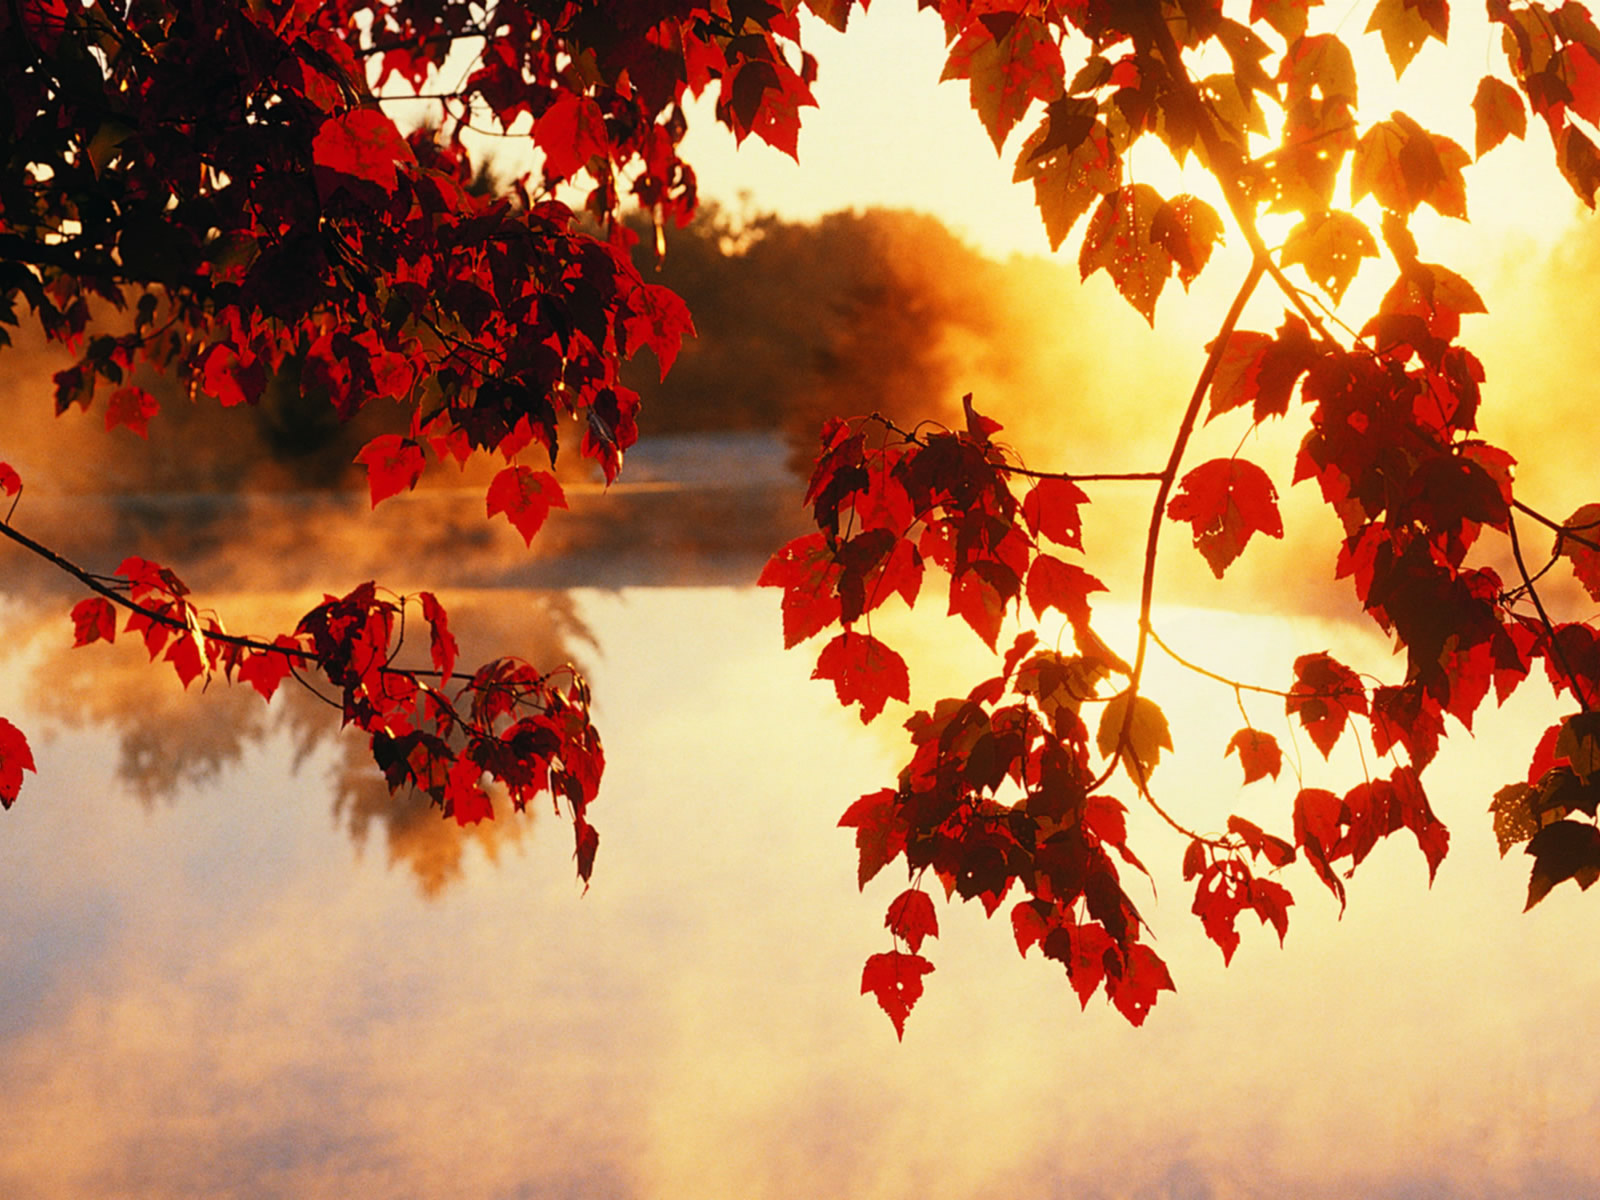 Fall Wallpaper 880 Free Cool